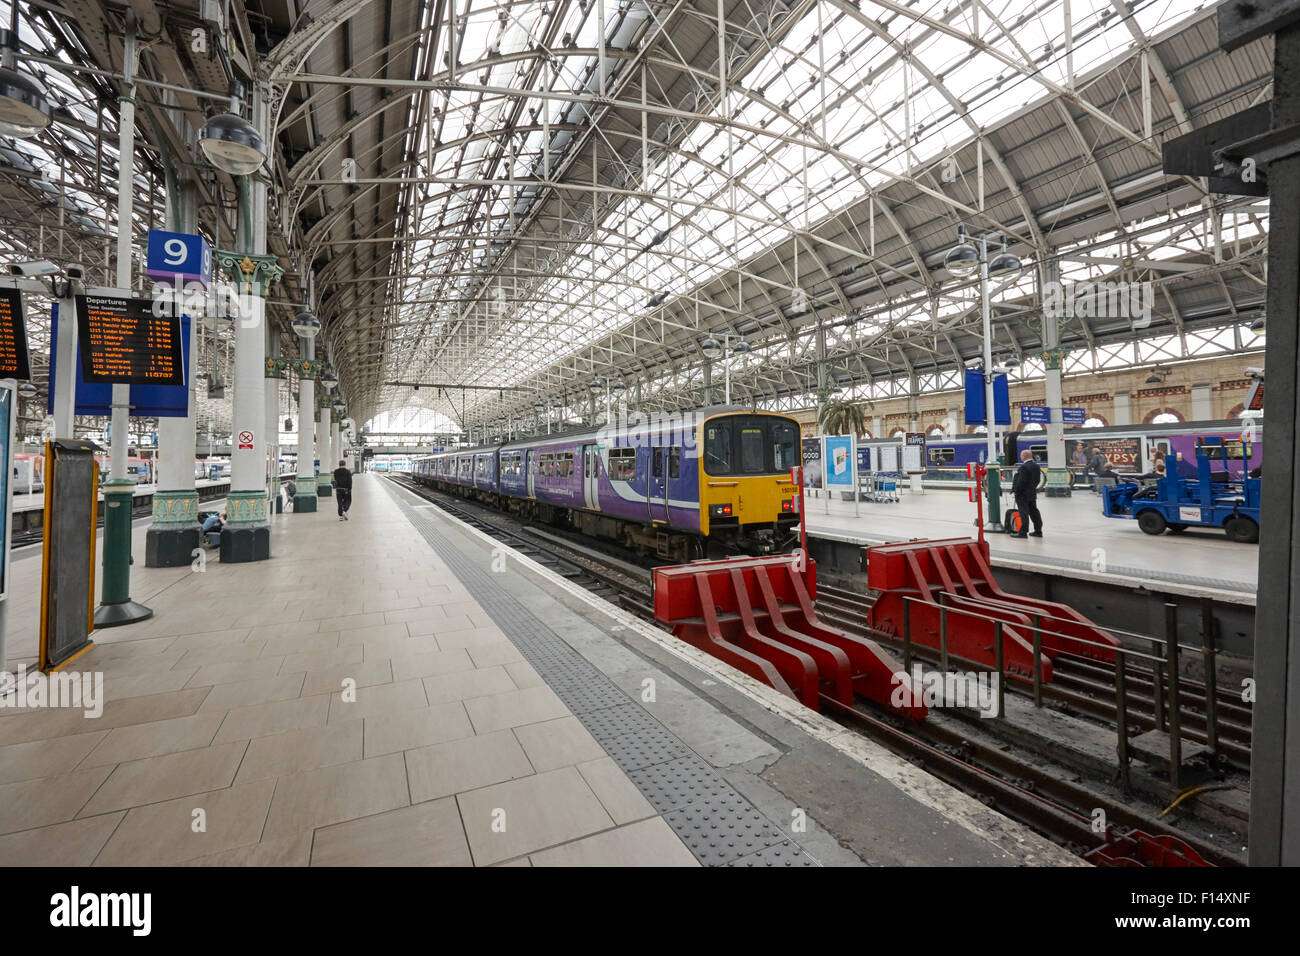 northern rail train at platform in Piccadilly train station Manchester UK - Stock Image